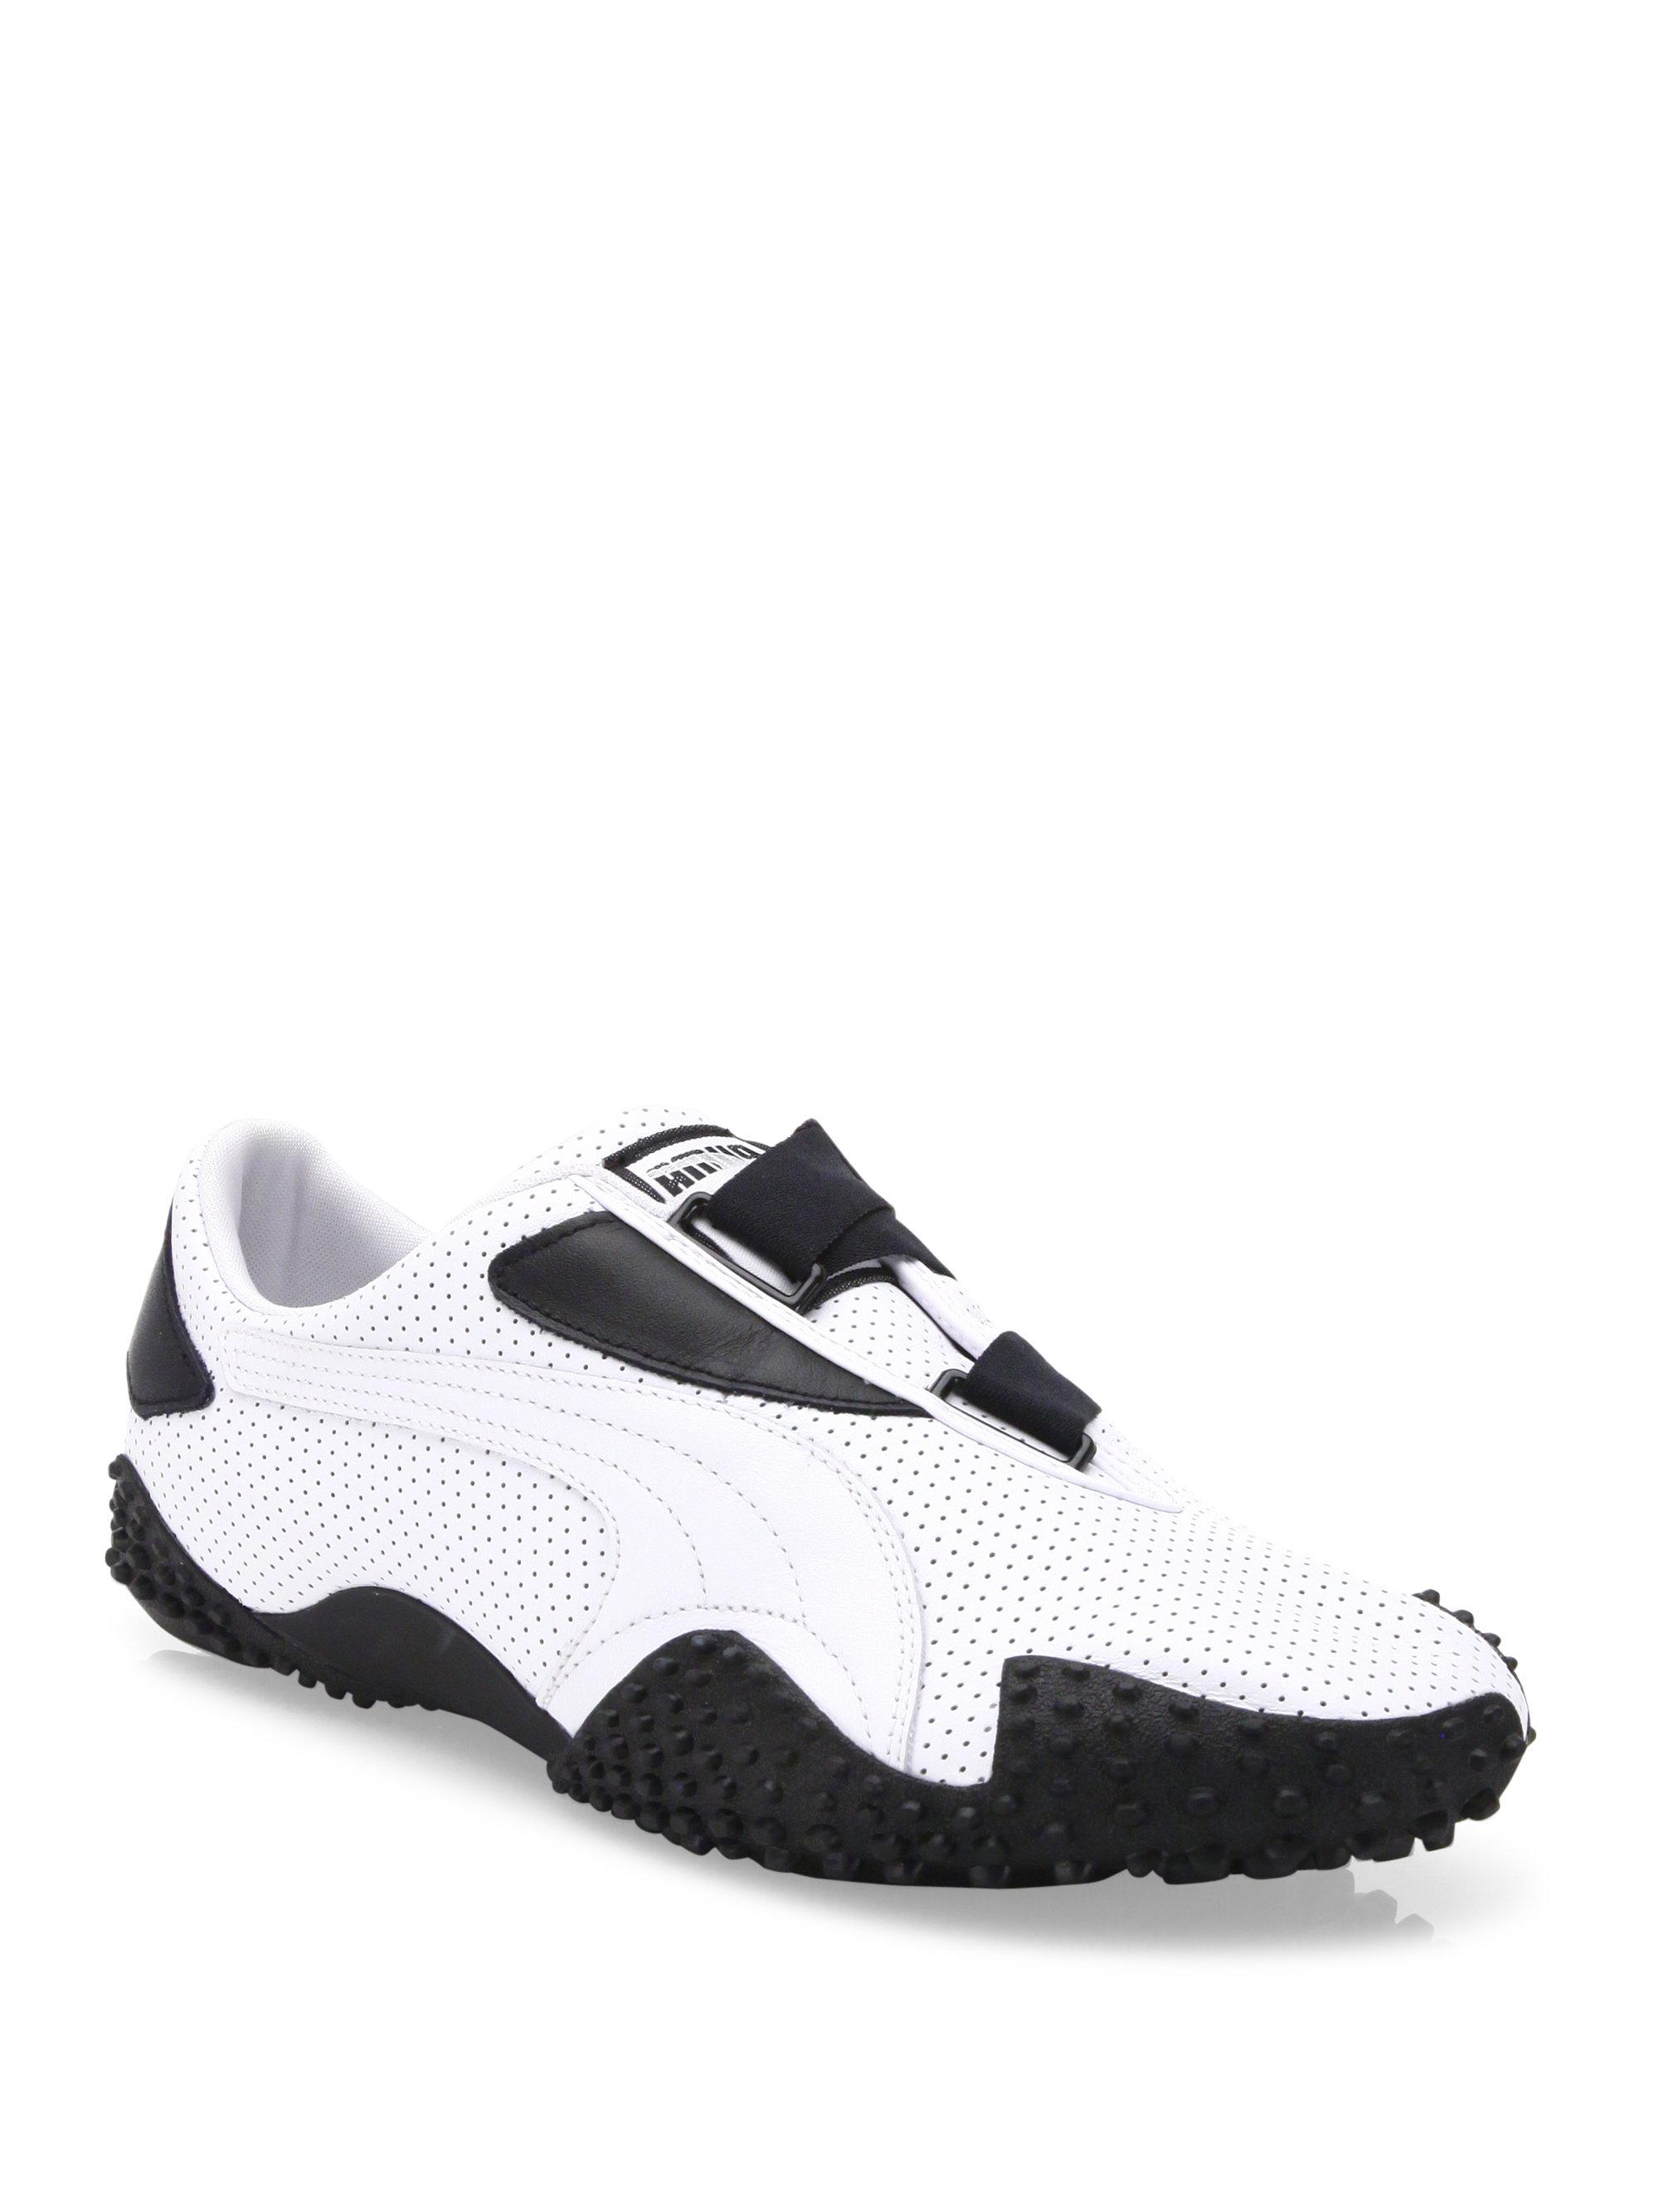 Lyst - PUMA Mostro Perforated Leather Sneakers in White for Men c0069ebc7